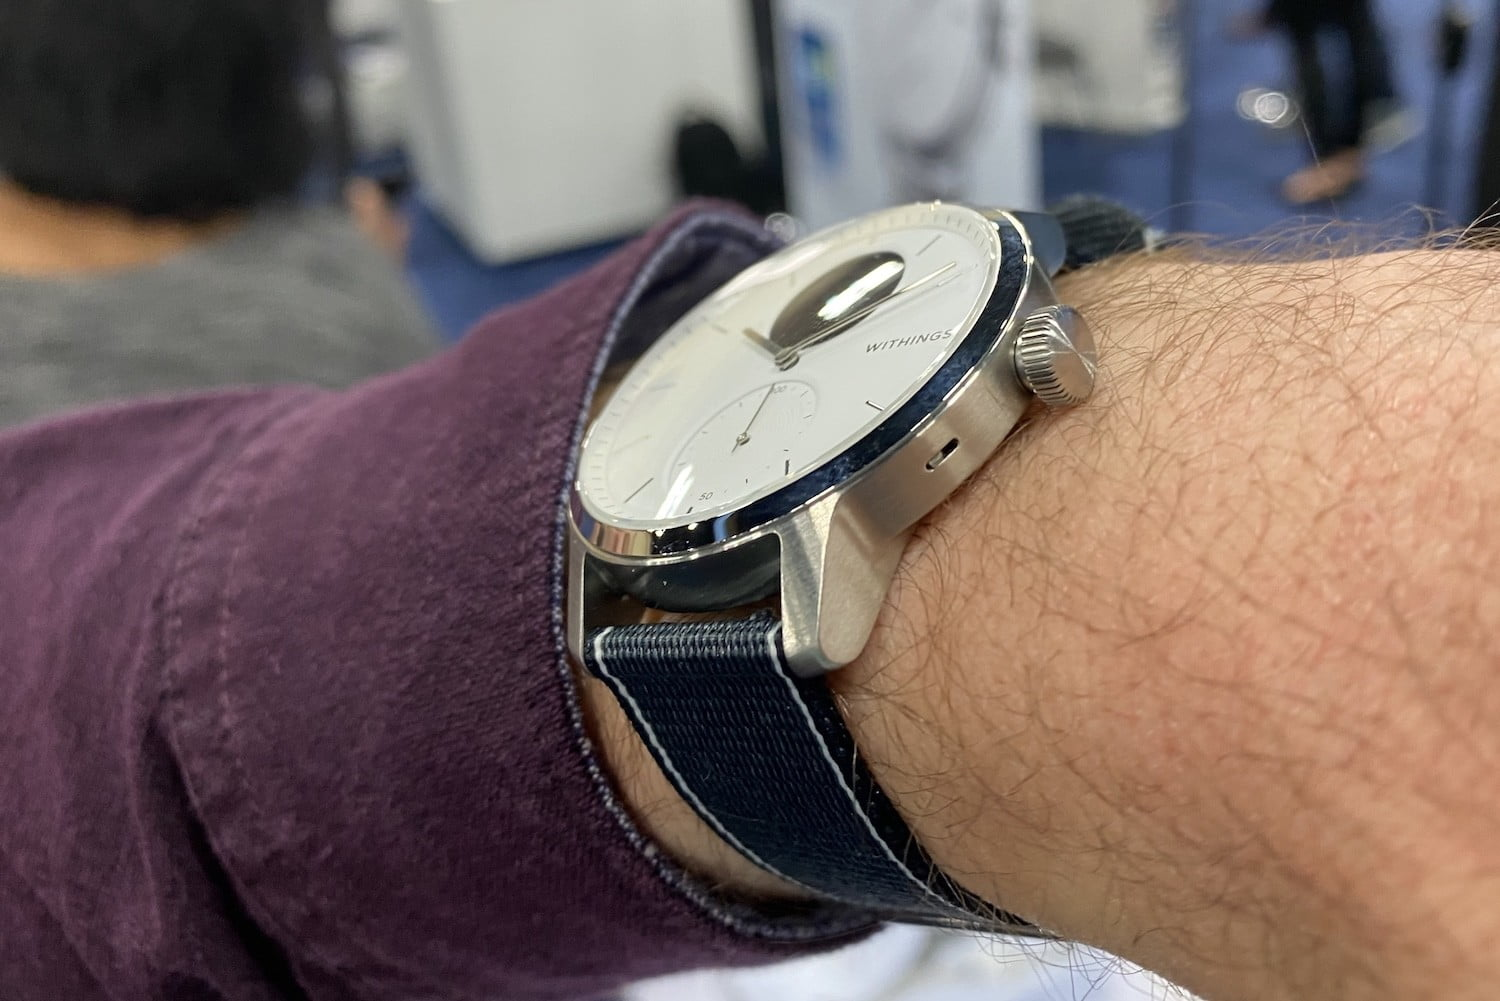 Withings New Scanwatch Hybrid Smartwatch Helps Detect